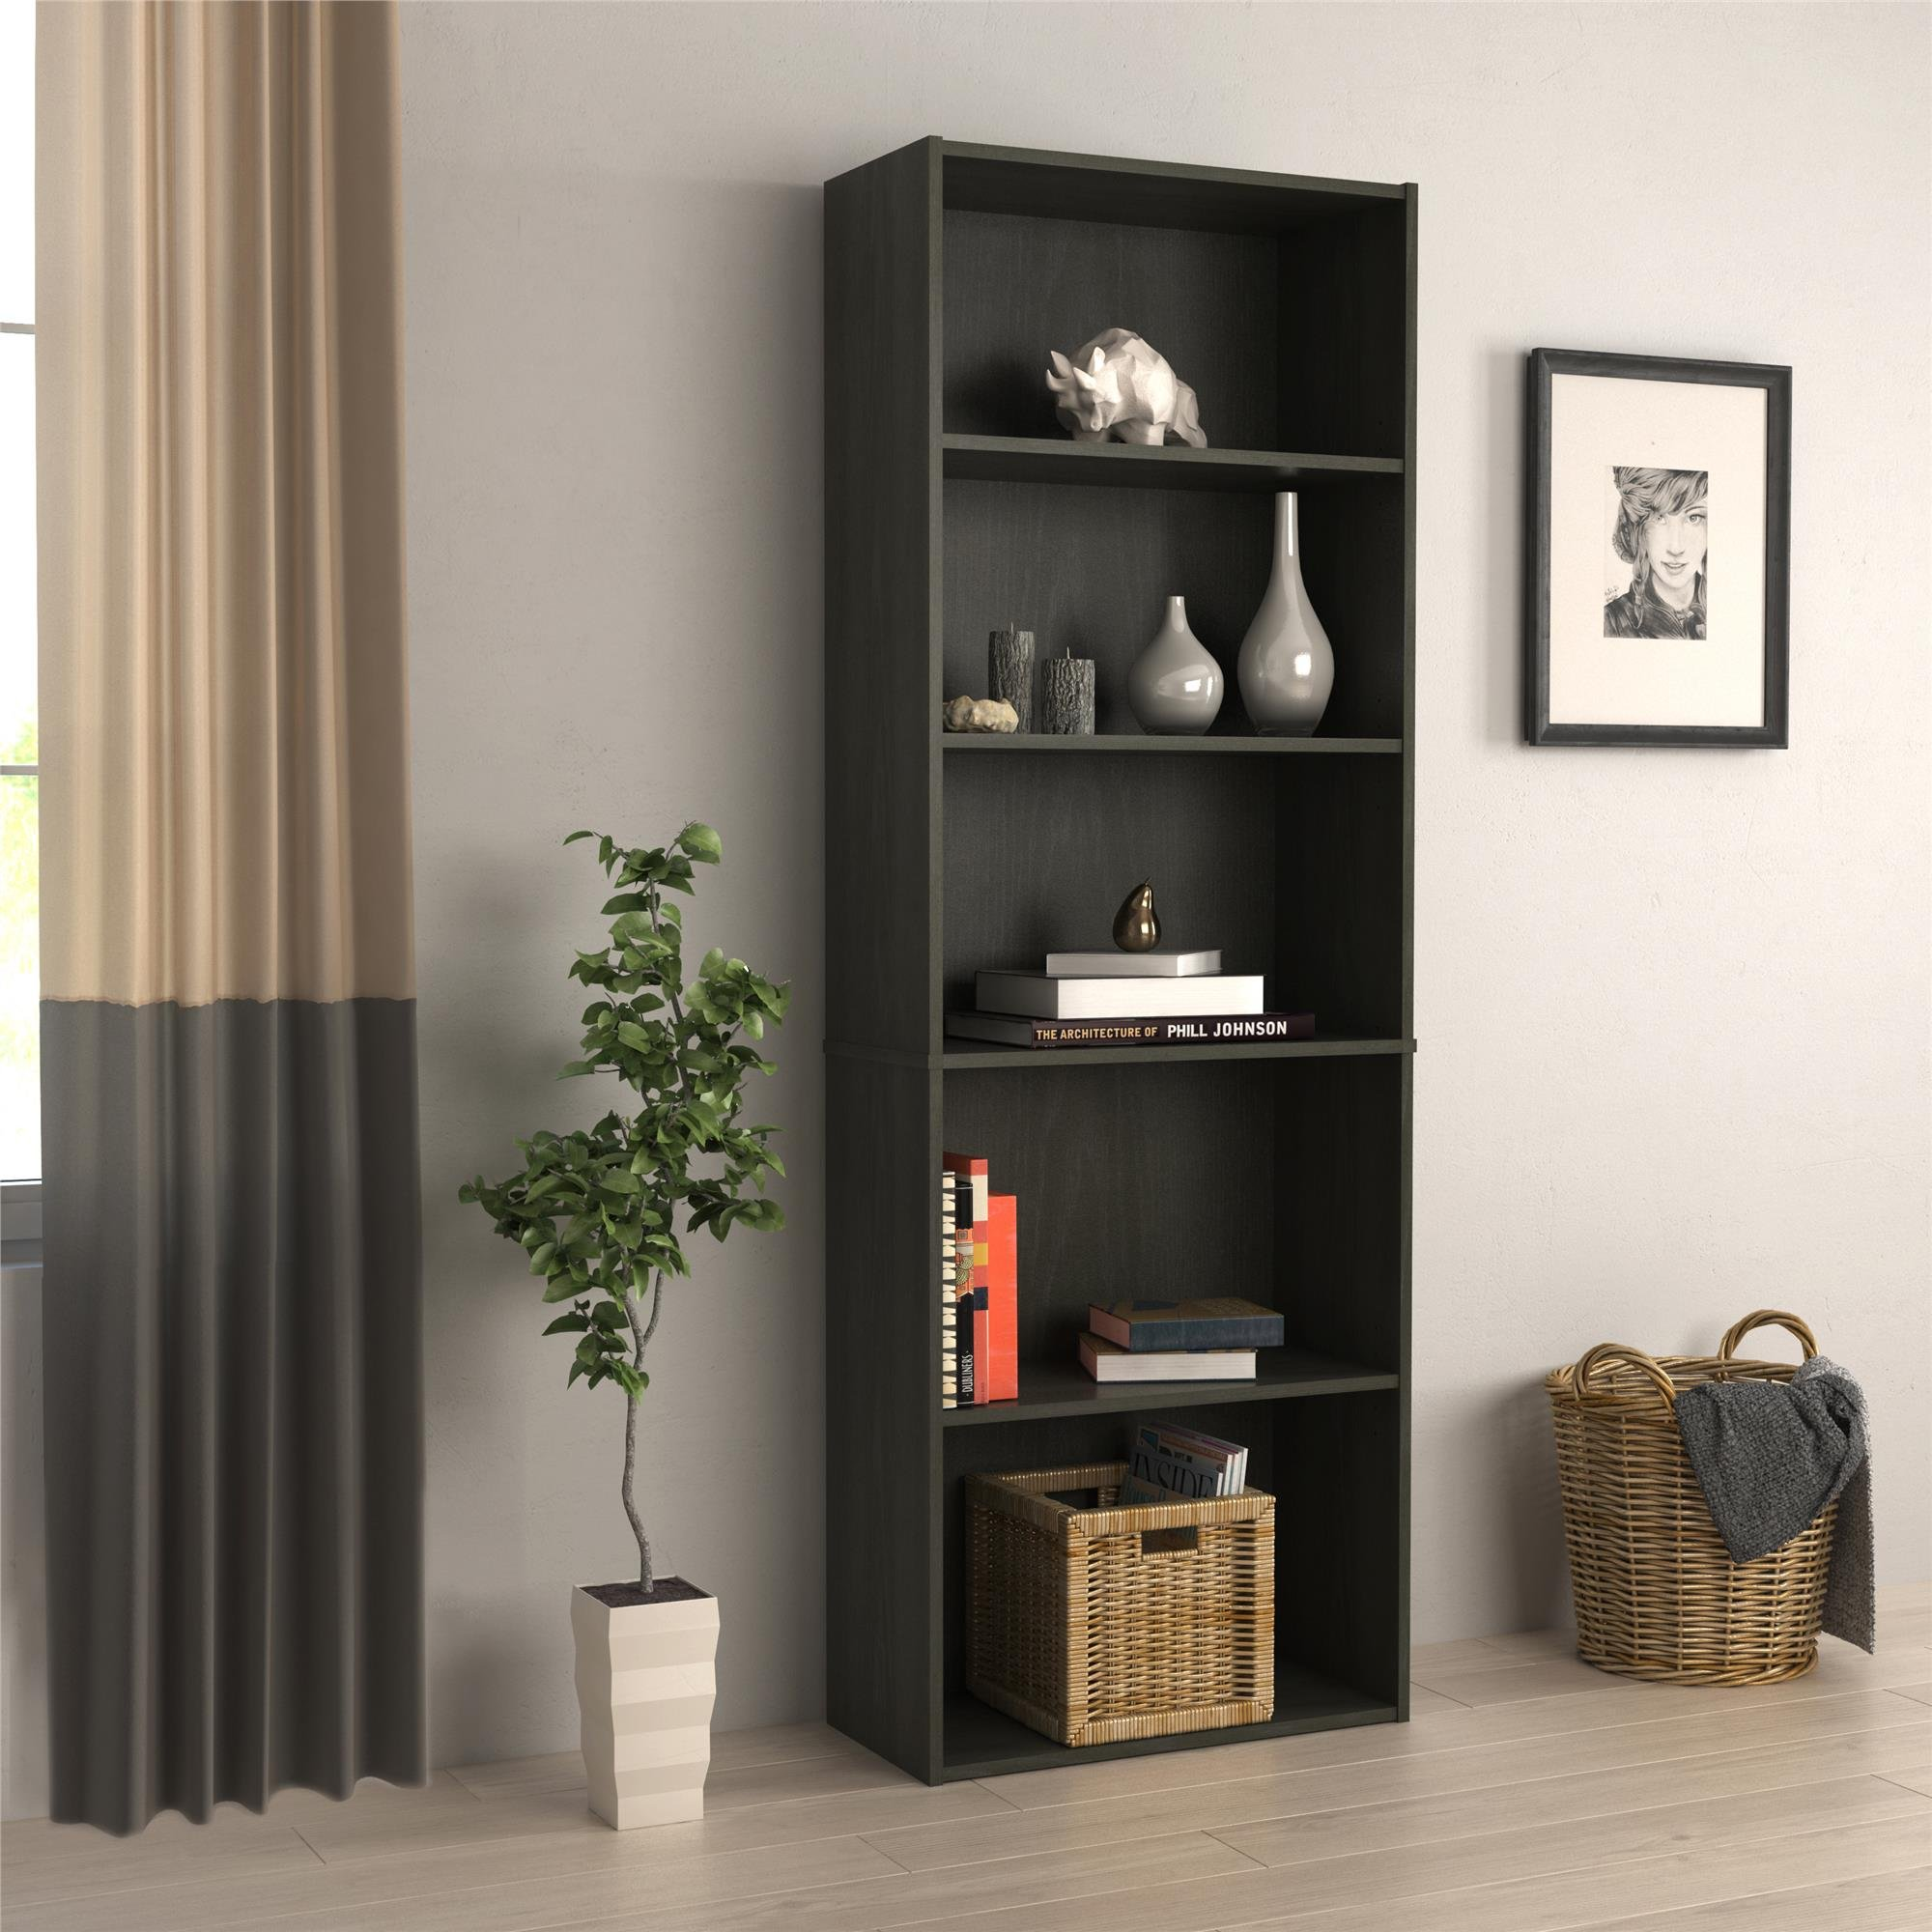 RealRooms Tally 5 Shelf Bookcase, Black Oak